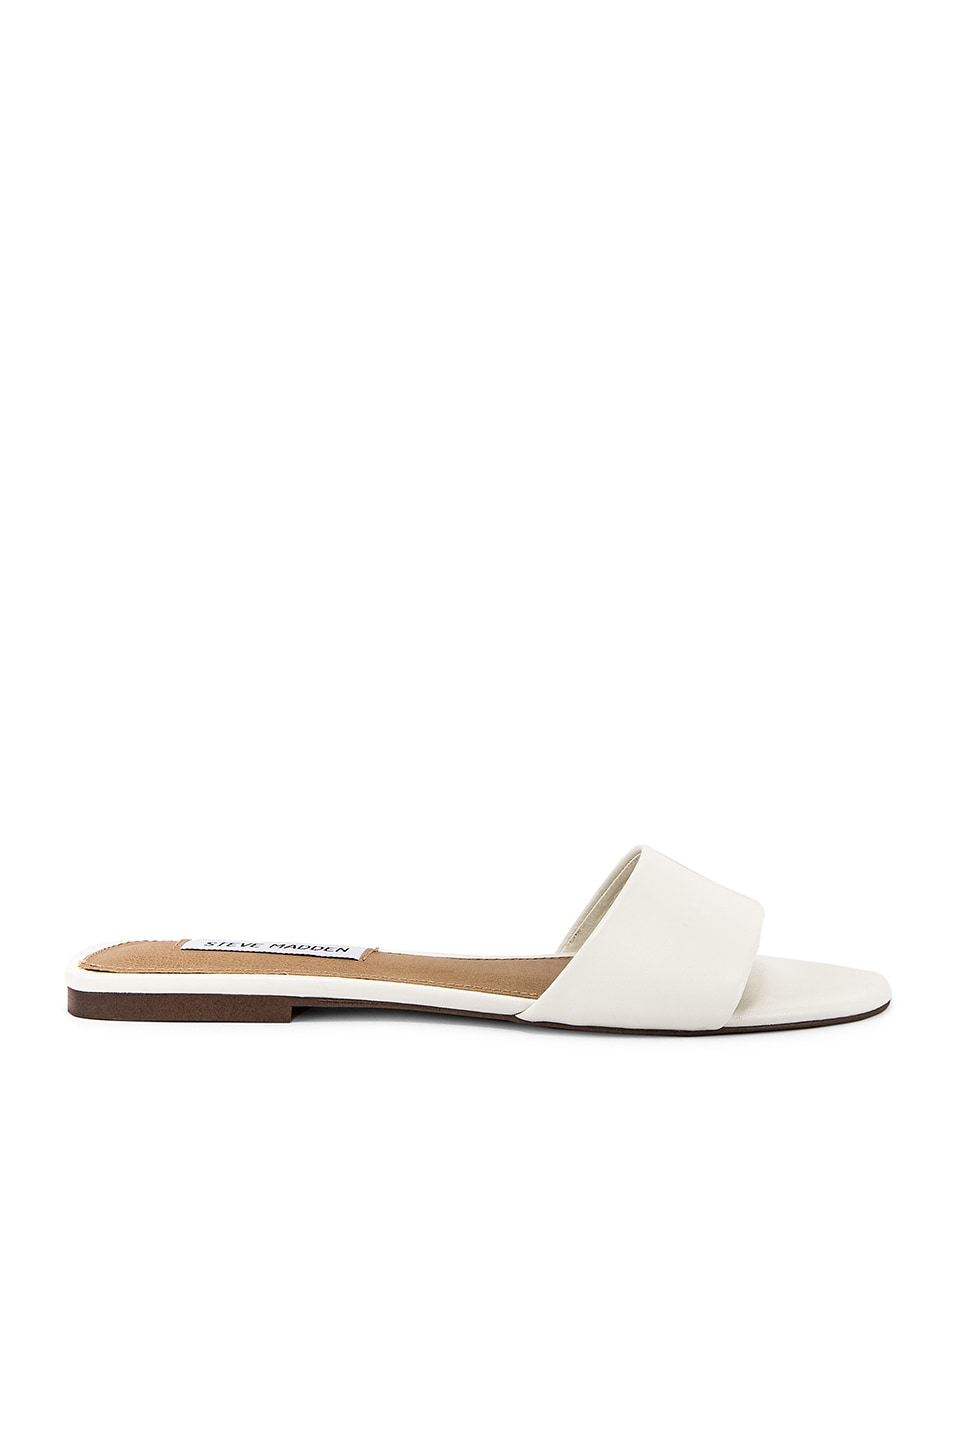 Steve Madden Bev Slide in White